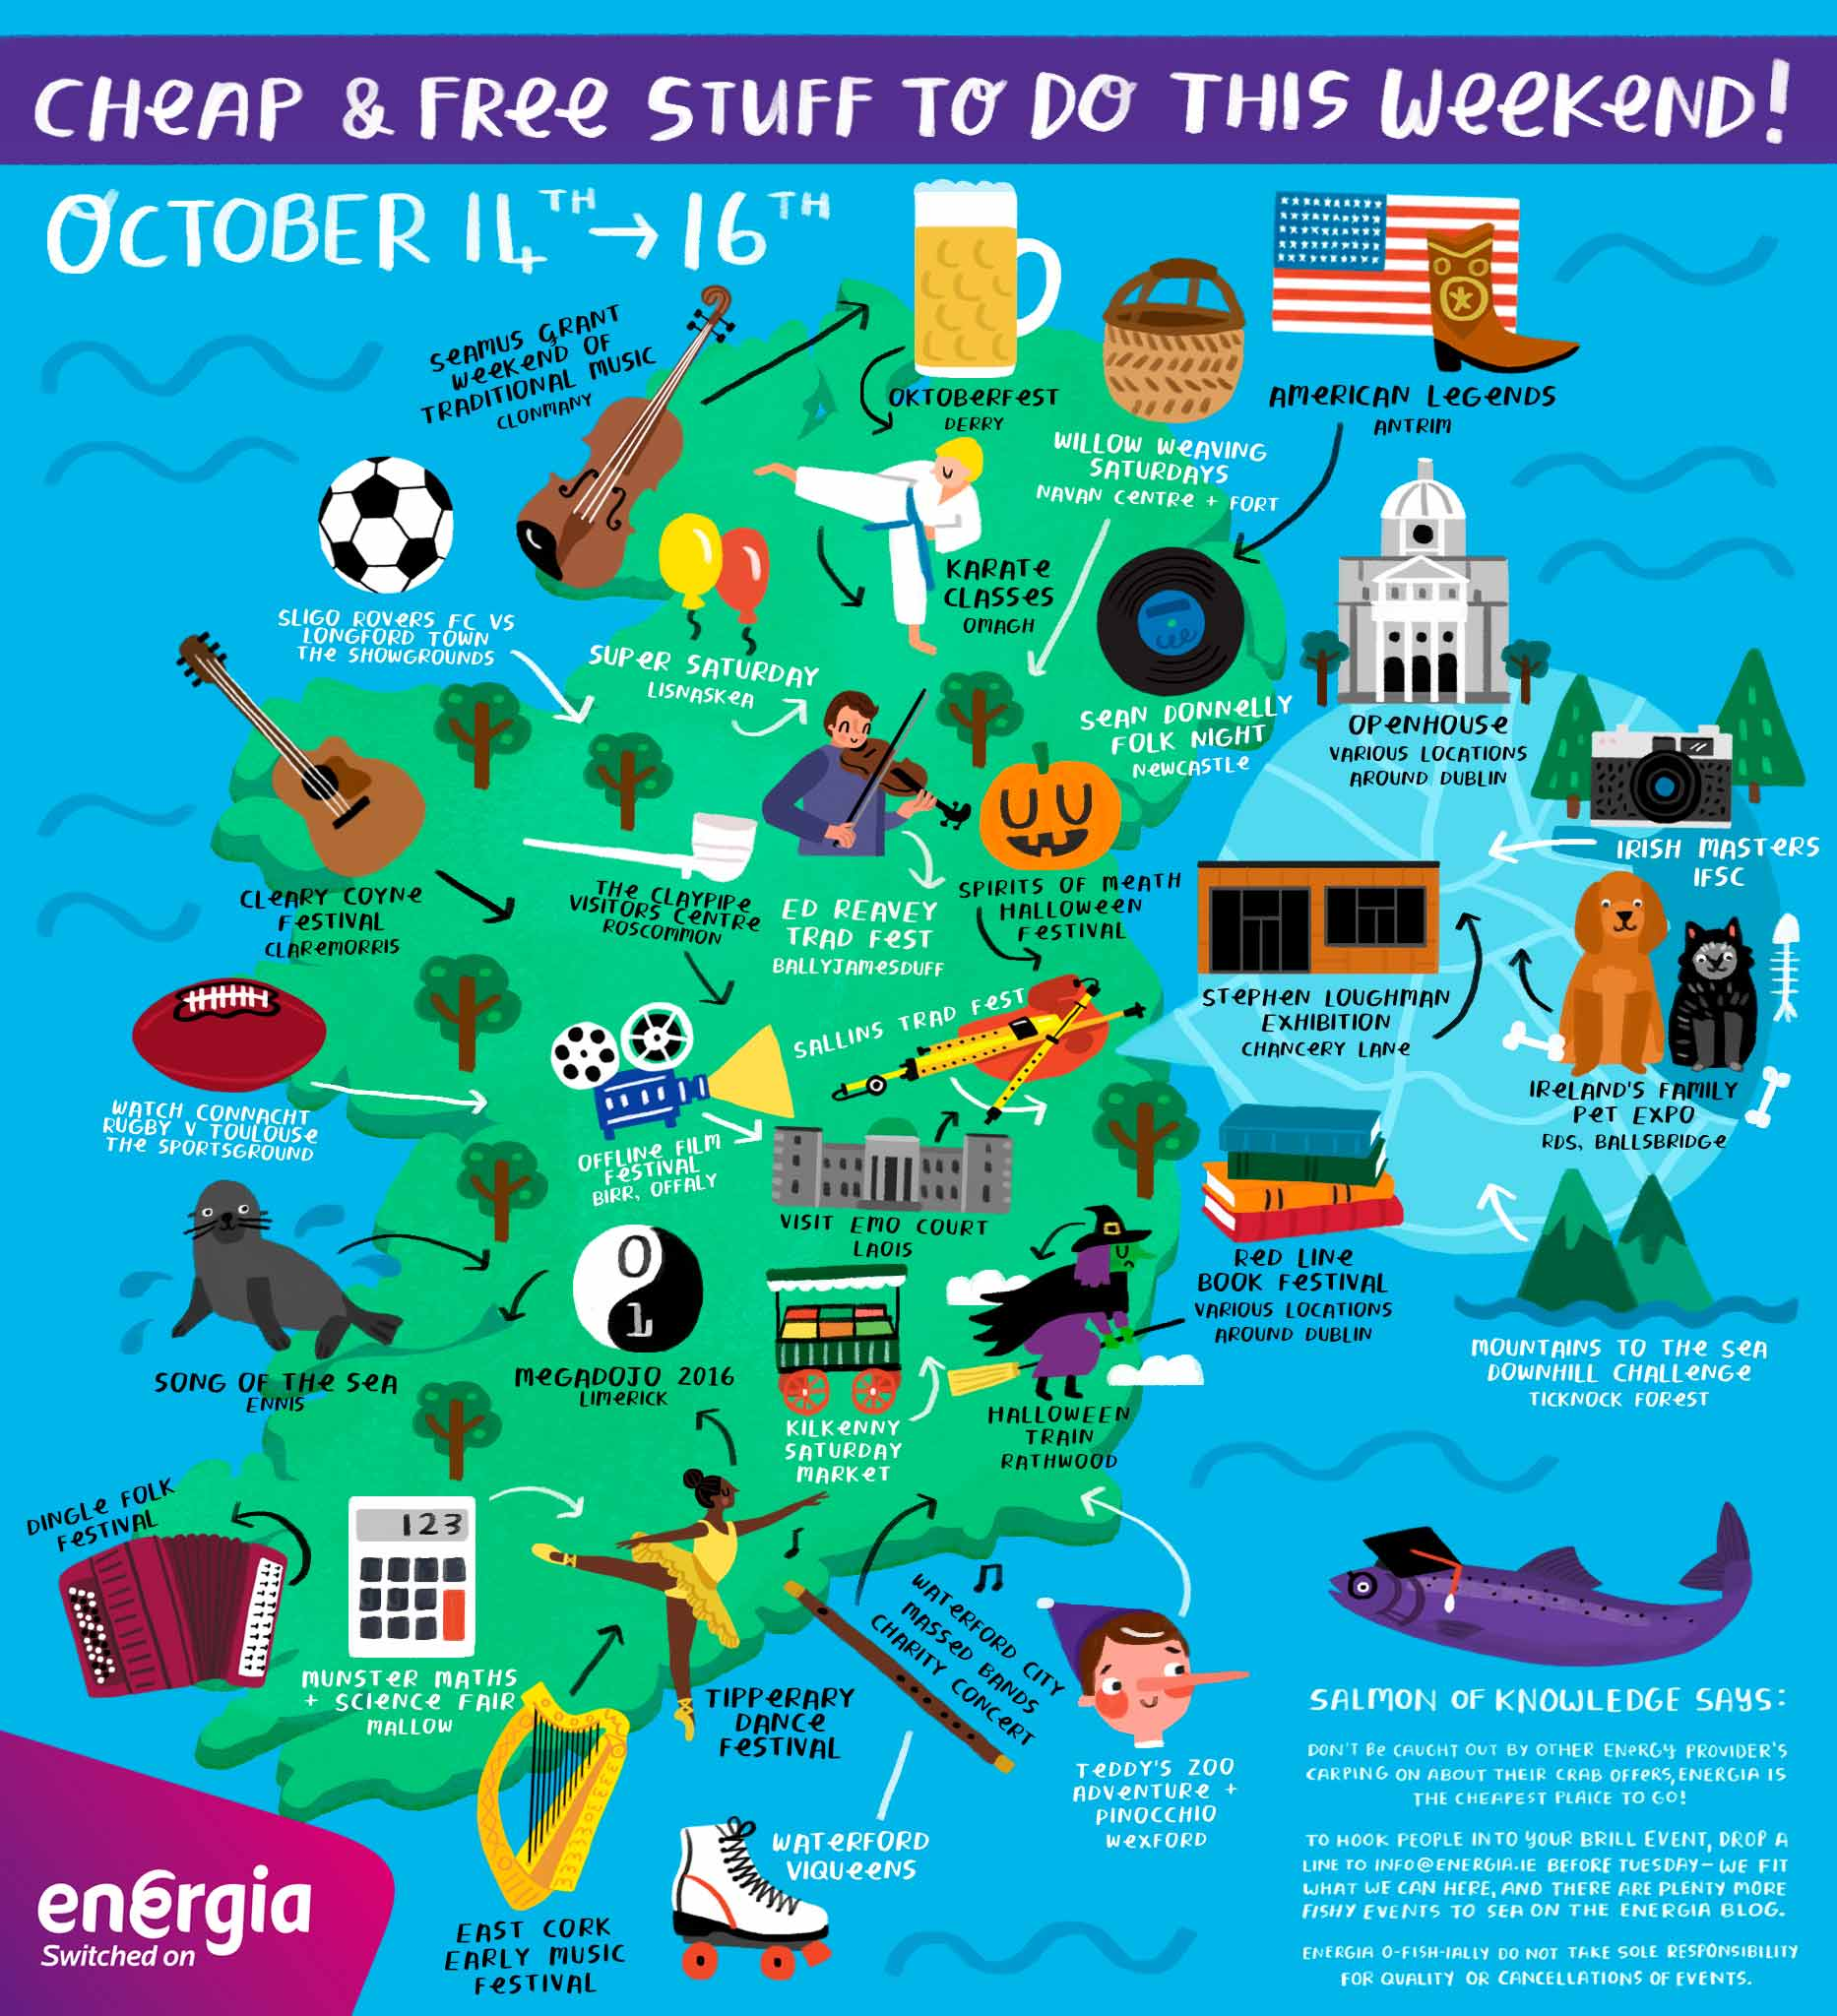 Cheap & Free stuff to do this weekend 14th - 16th October